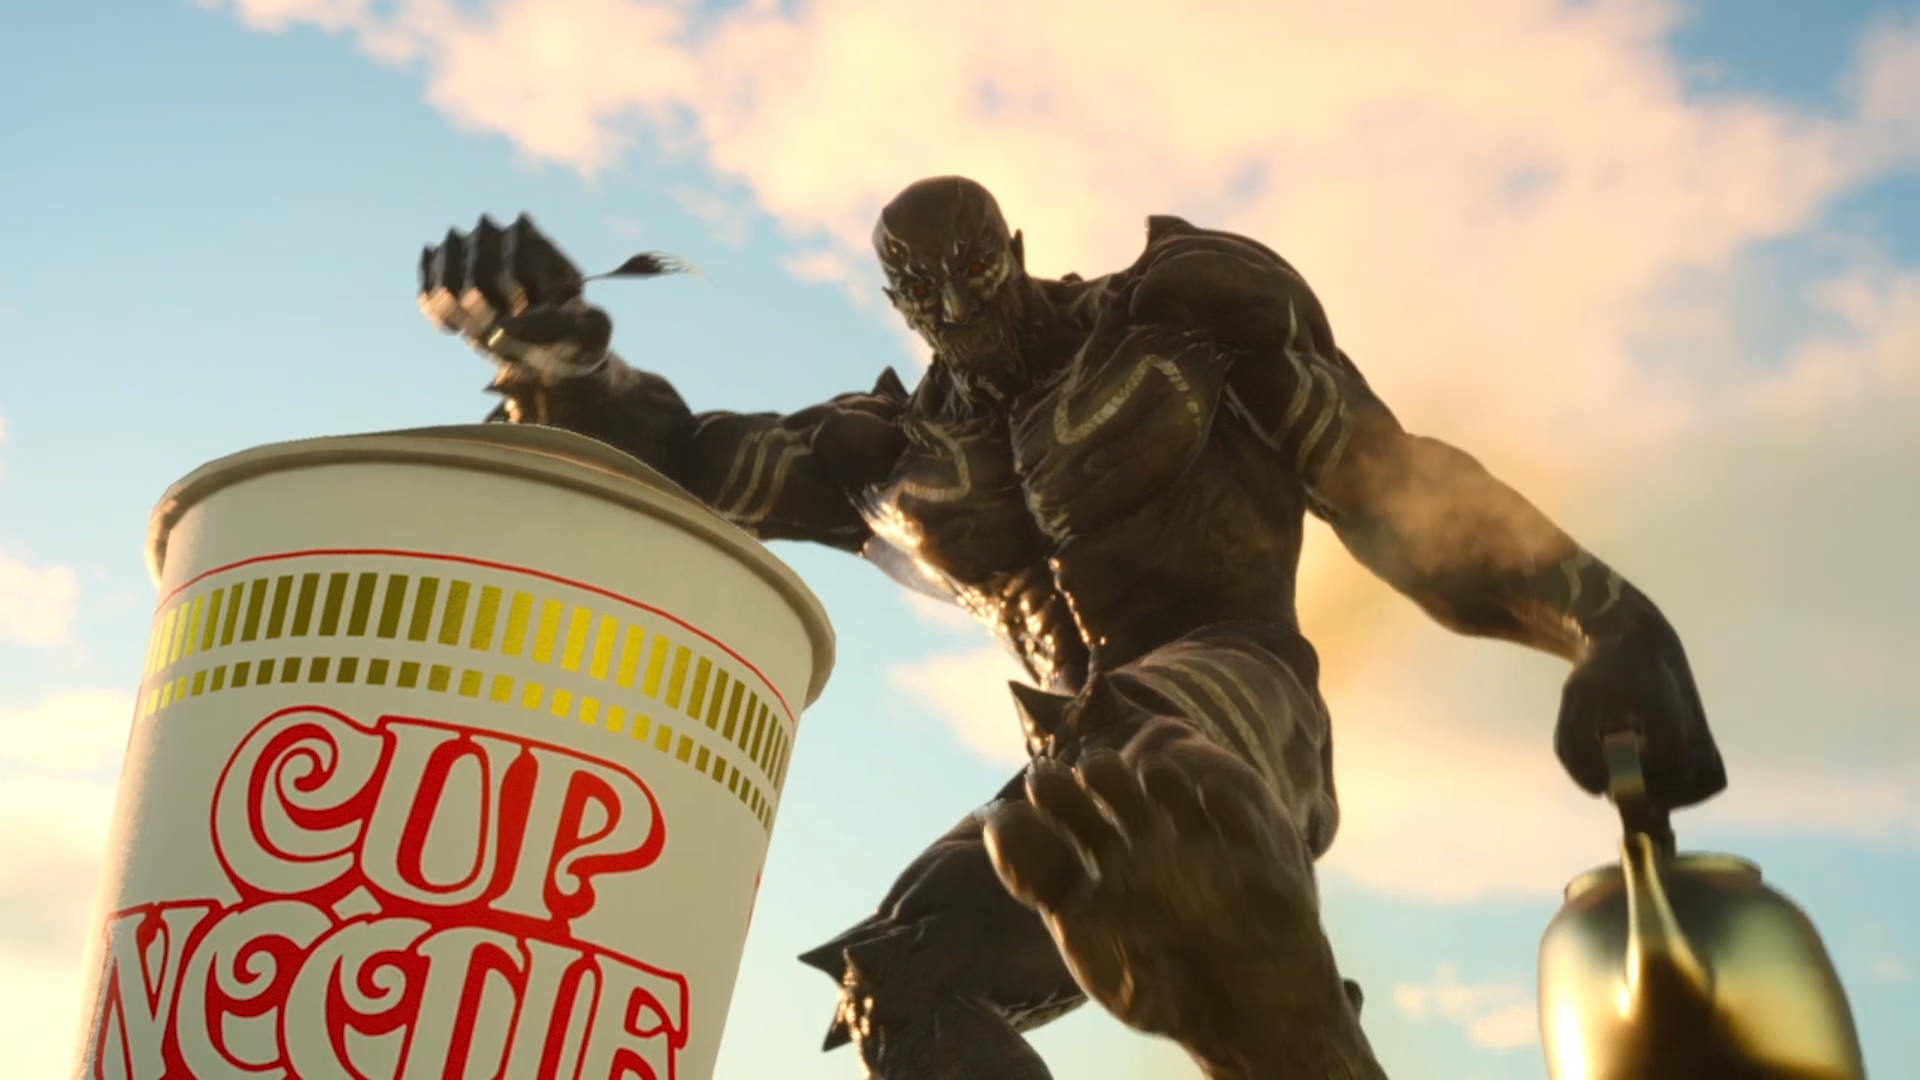 Cup noodle xv ultimate version 4